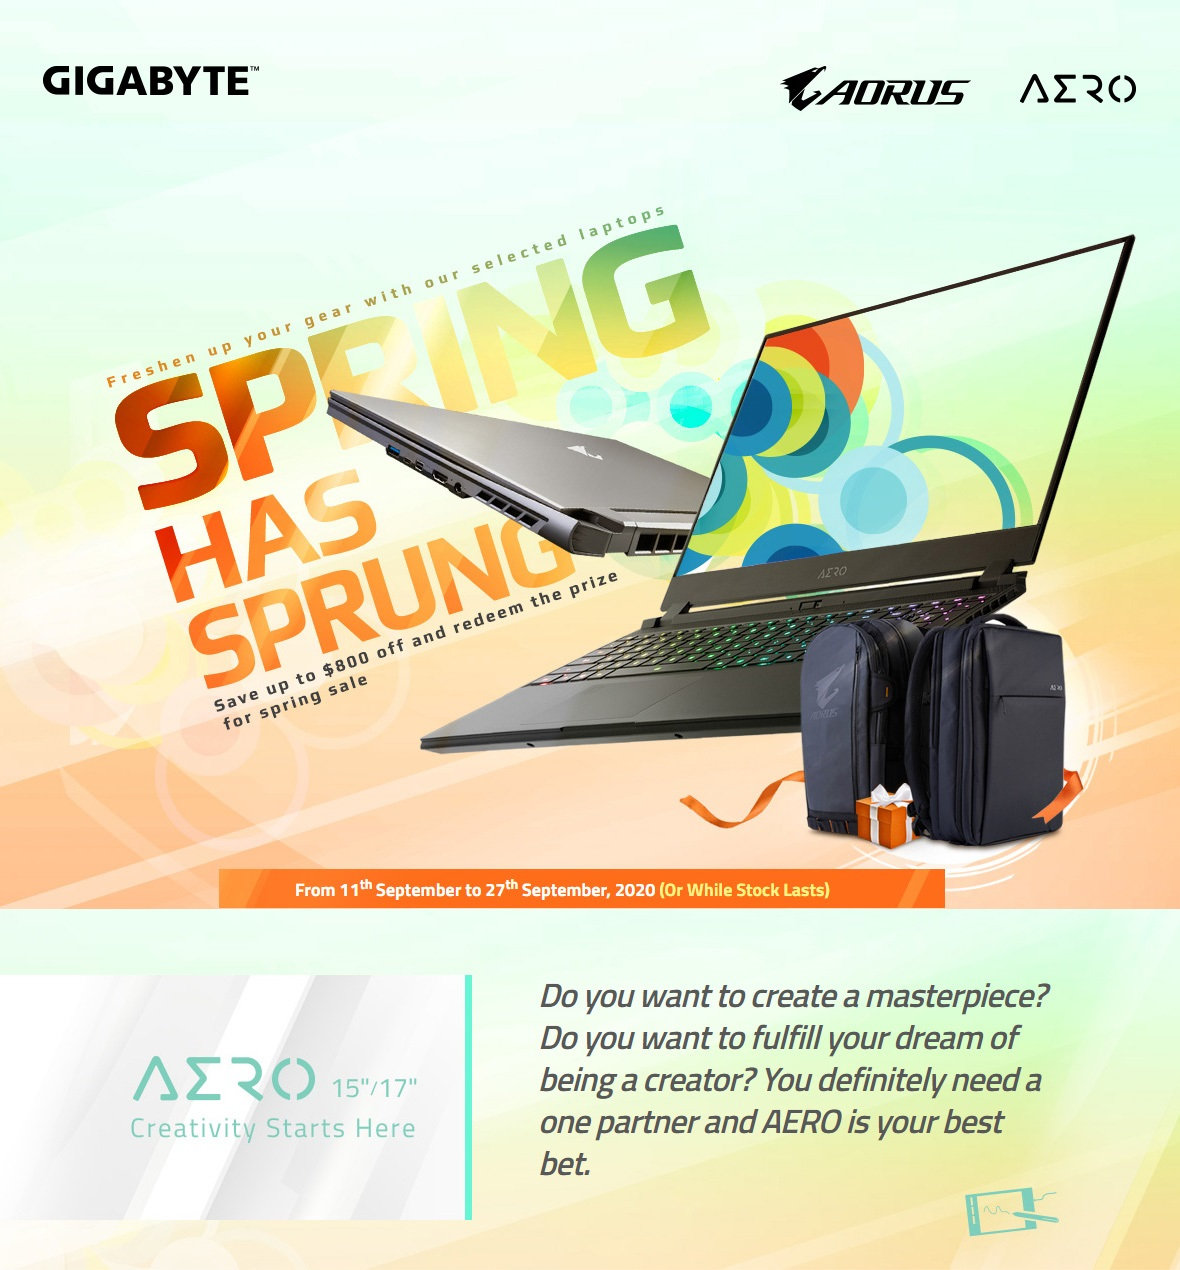 Save up to $800 on select Gigabyte Laptops